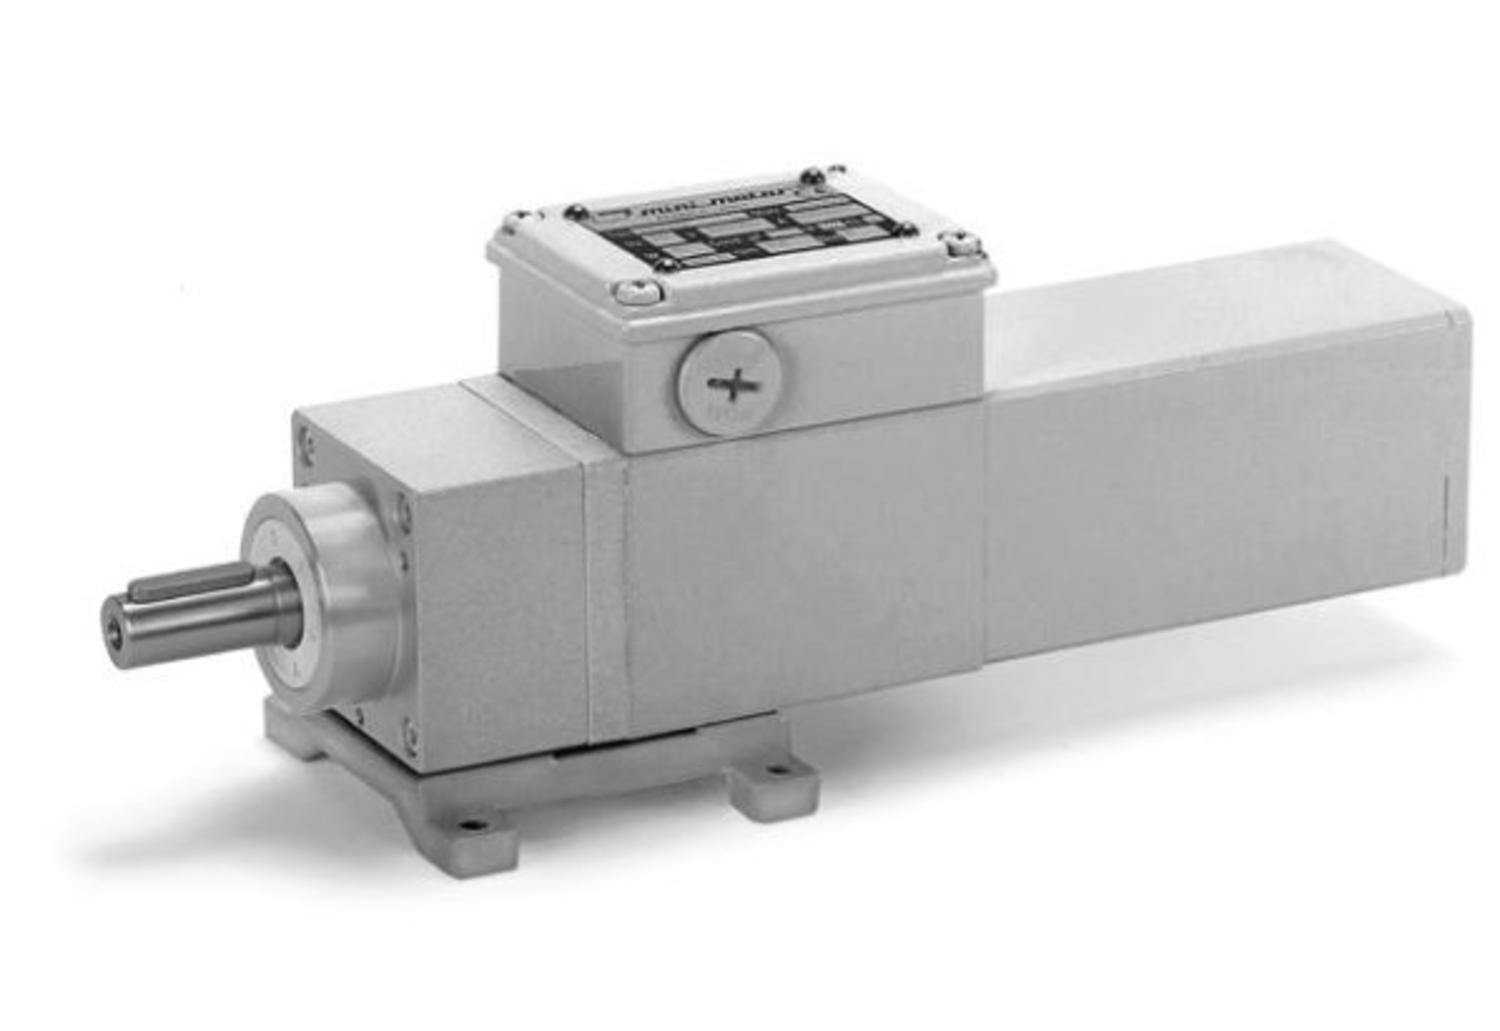 ACEF coaxial gear motors with further planetary gear